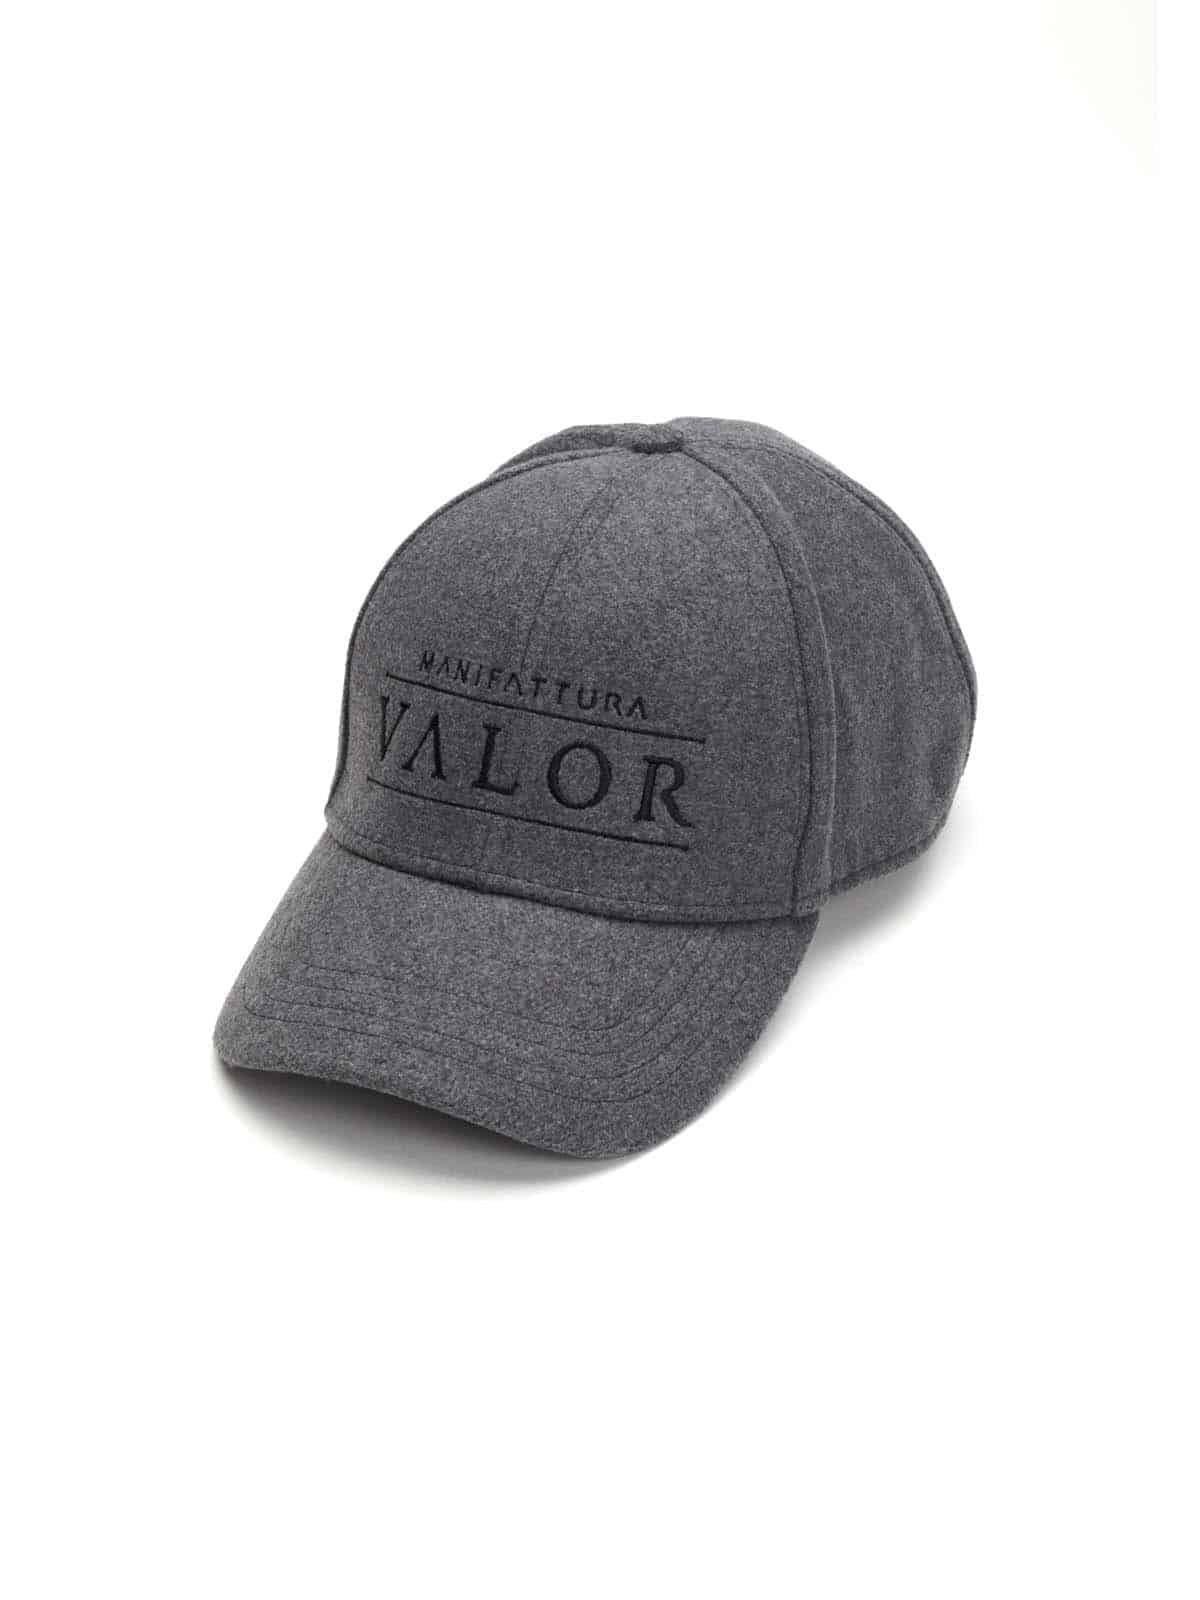 polo cap for horse rider